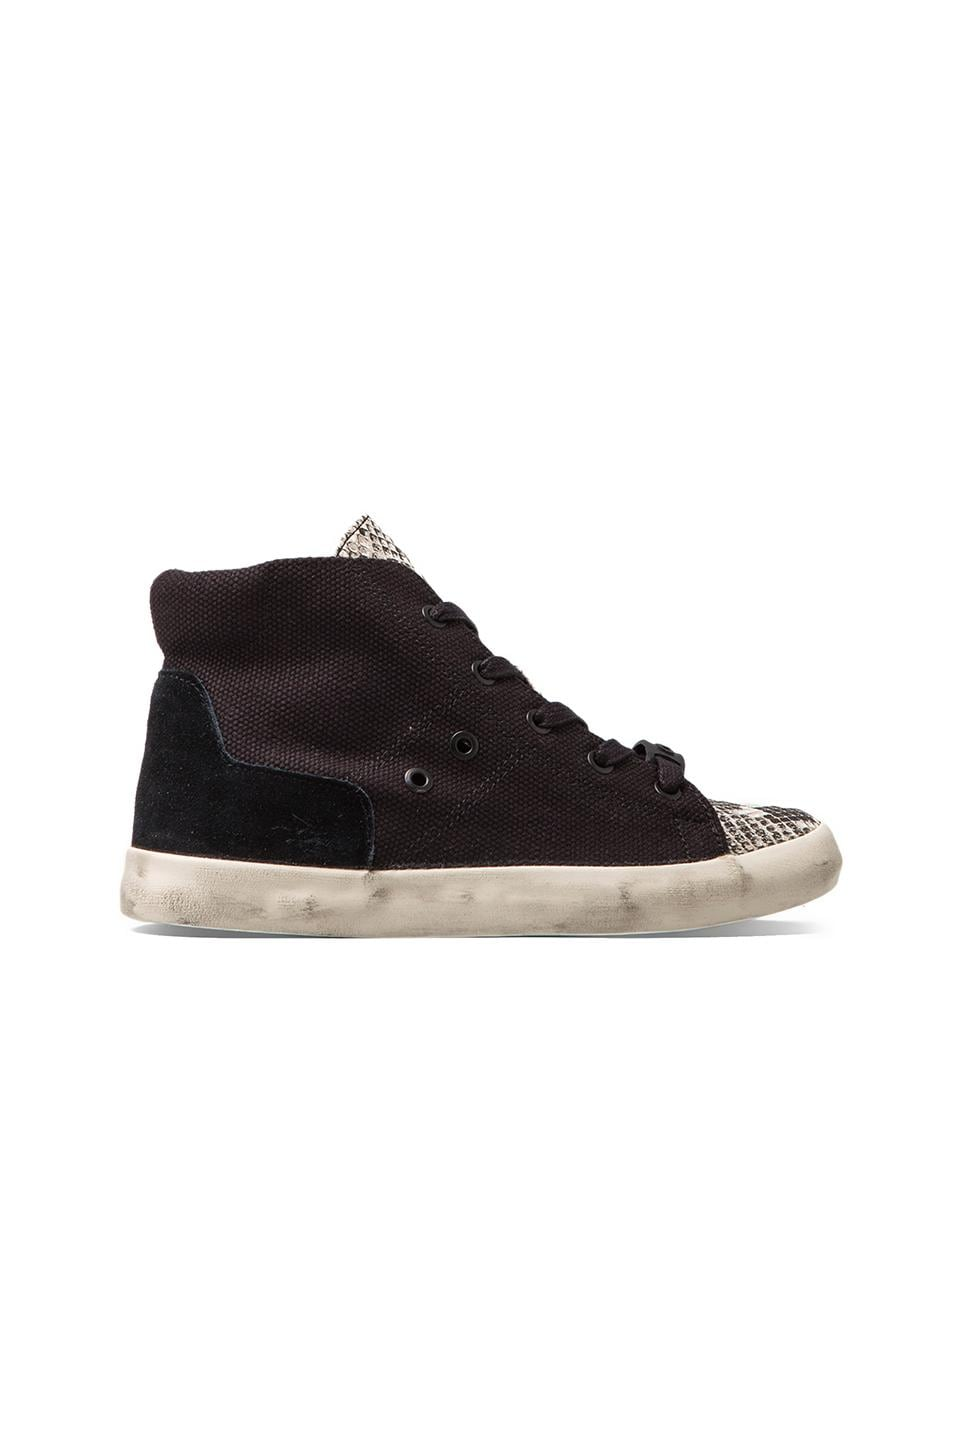 Circus by Sam Edelman Talia Sneaker in Black/Pitone